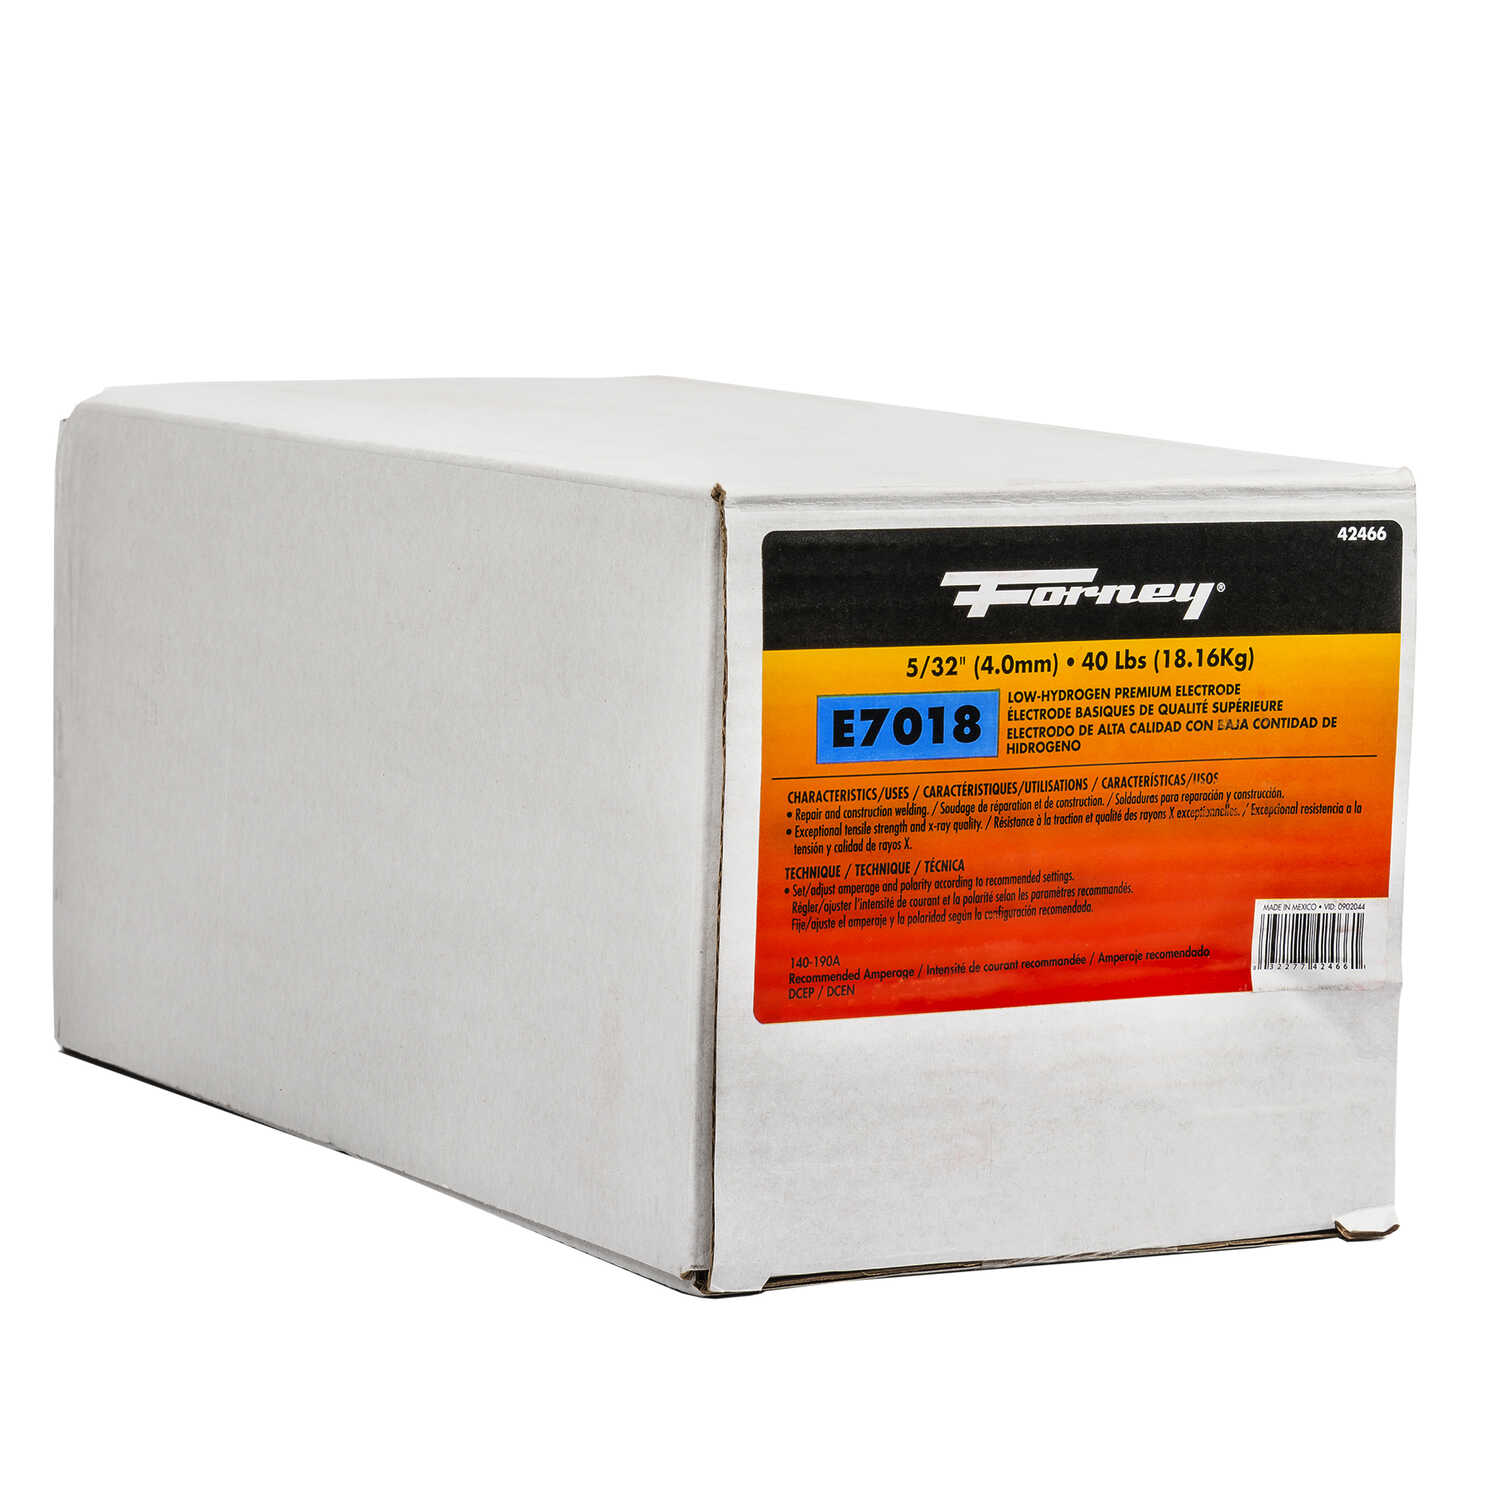 Forney  5/32 in. Dia. x 15 in. L E7018  Mild Steel  Low-Hydrogen Welding Electrodes  84000 psi 40 lb